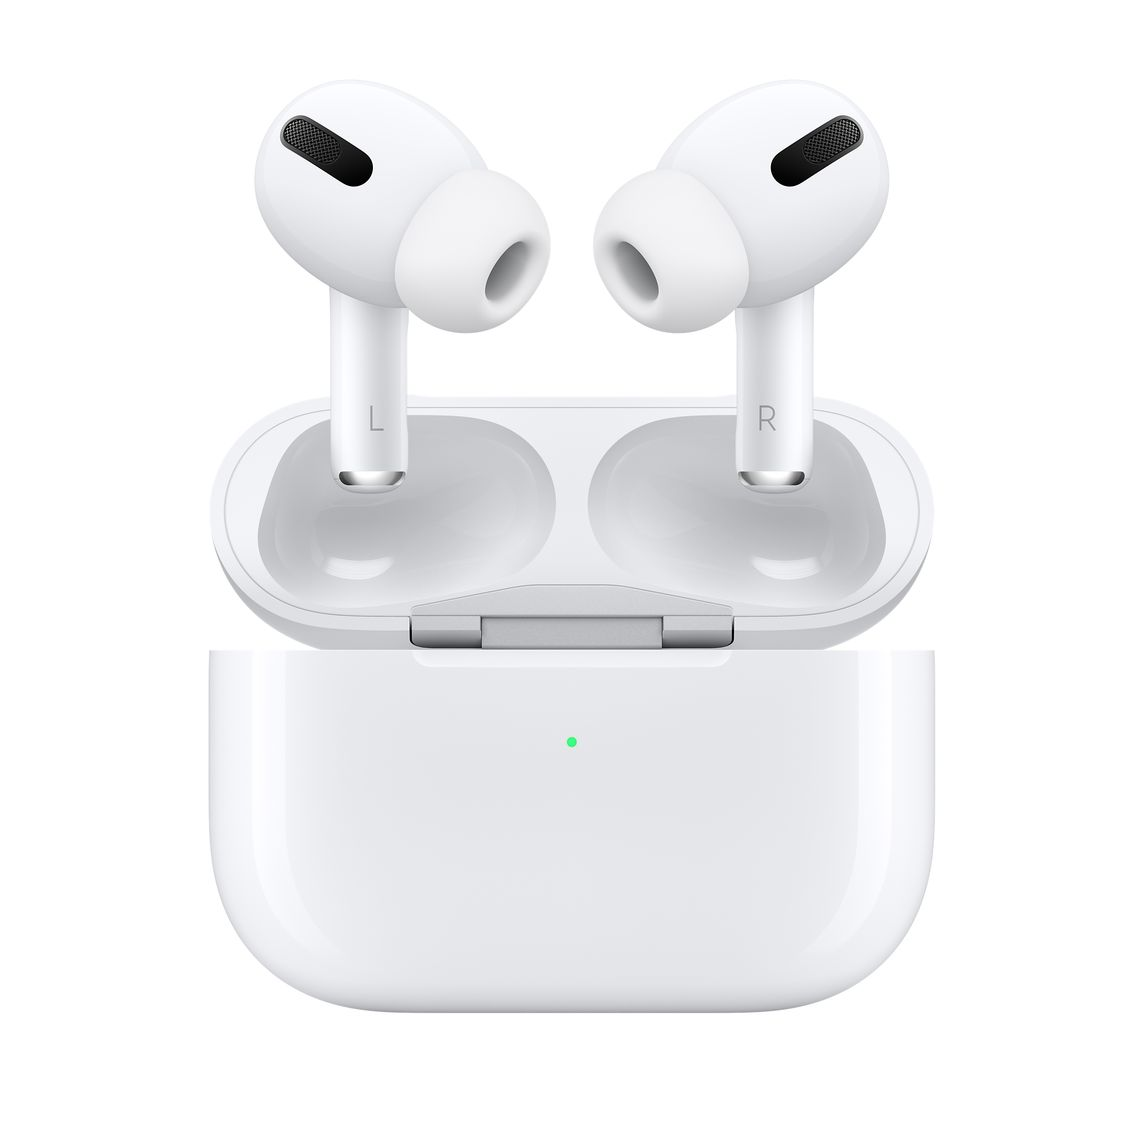 Image result for airpods pro